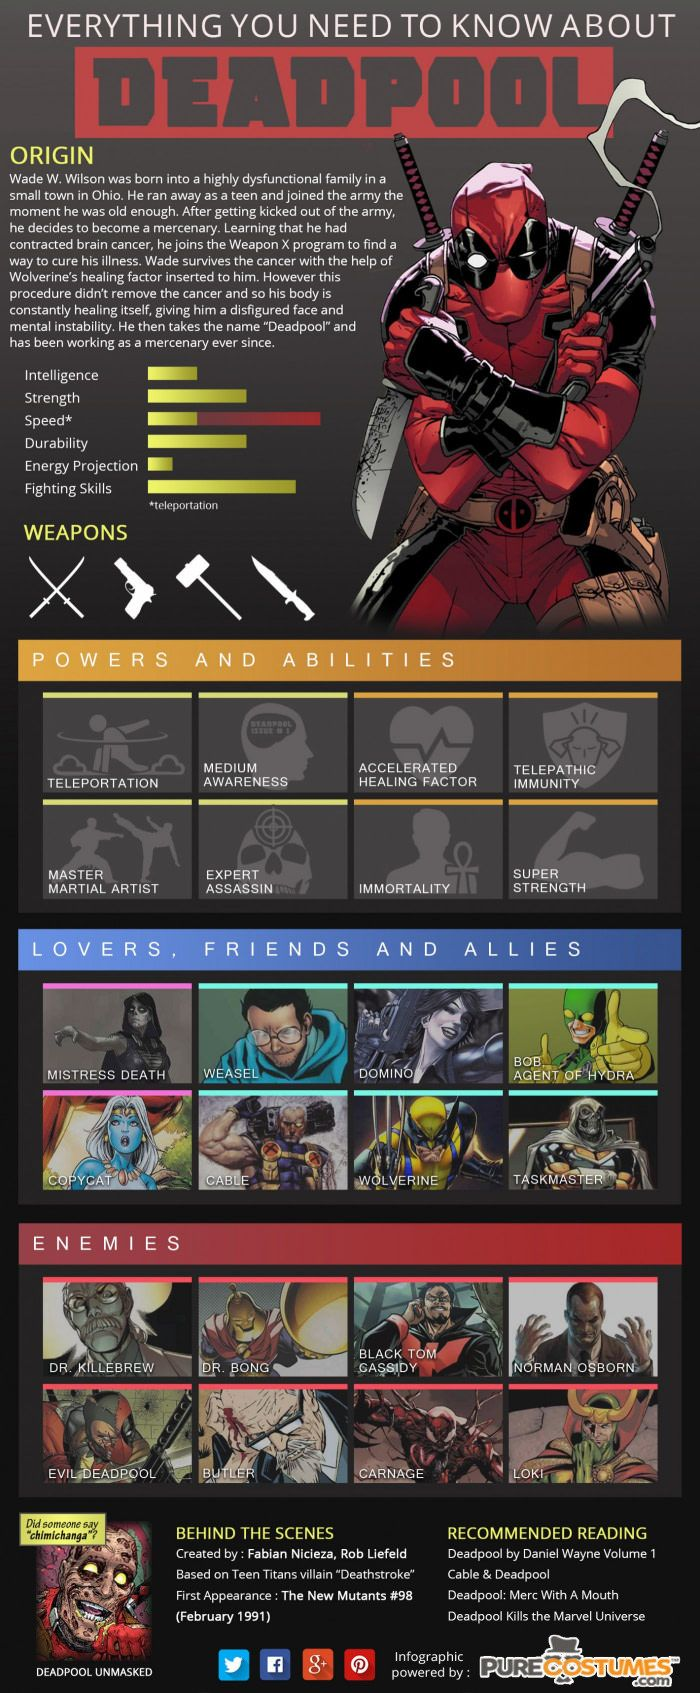 What You Need To Know About Deadpool Before Watching The Movie